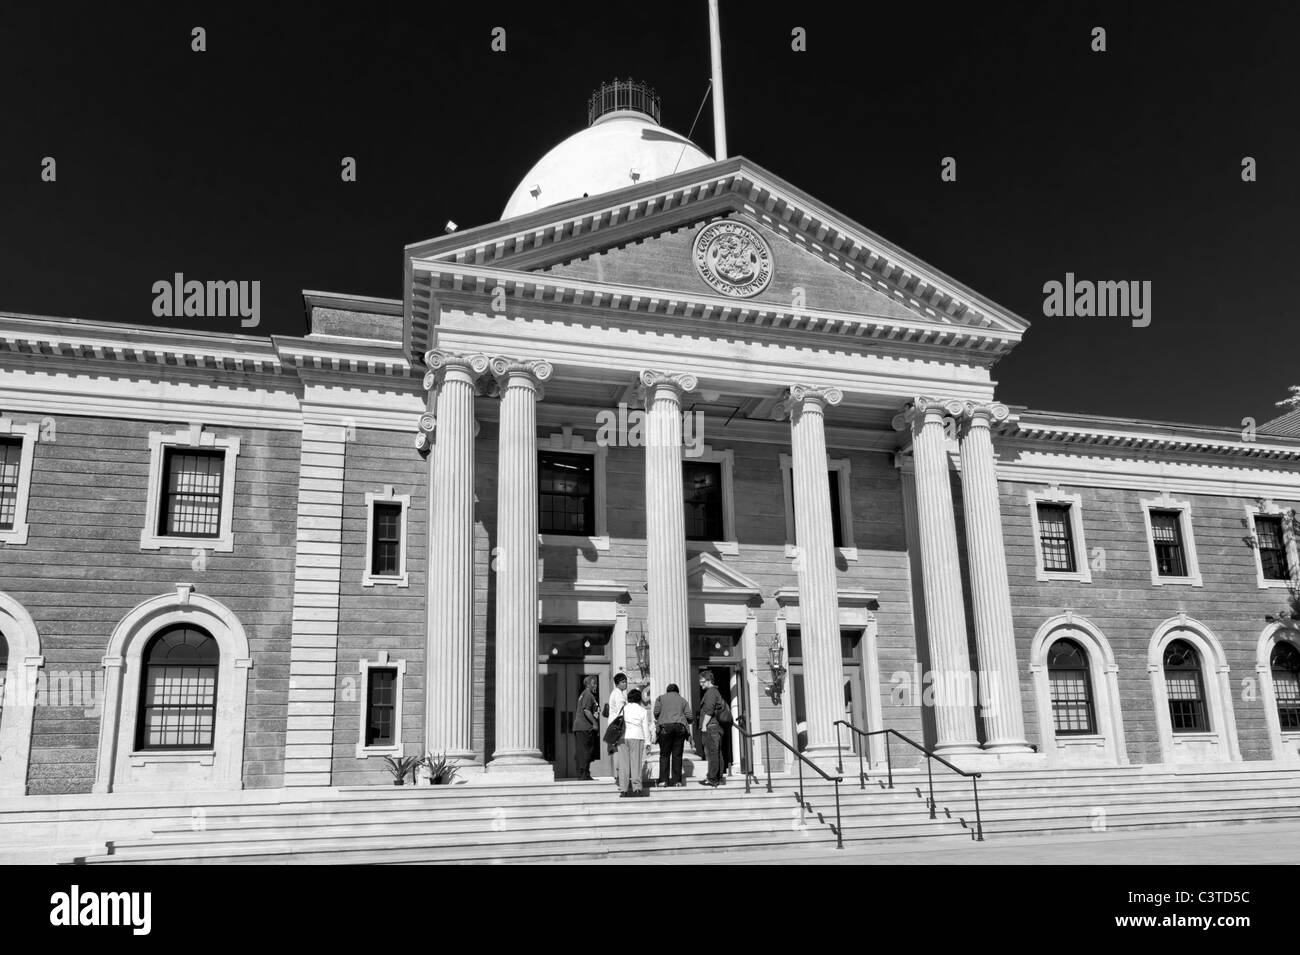 Nassau County's Theodore Roosevelt Executive and Legislative Building, diverse people at entrance, May 9, 2011, - Stock Image